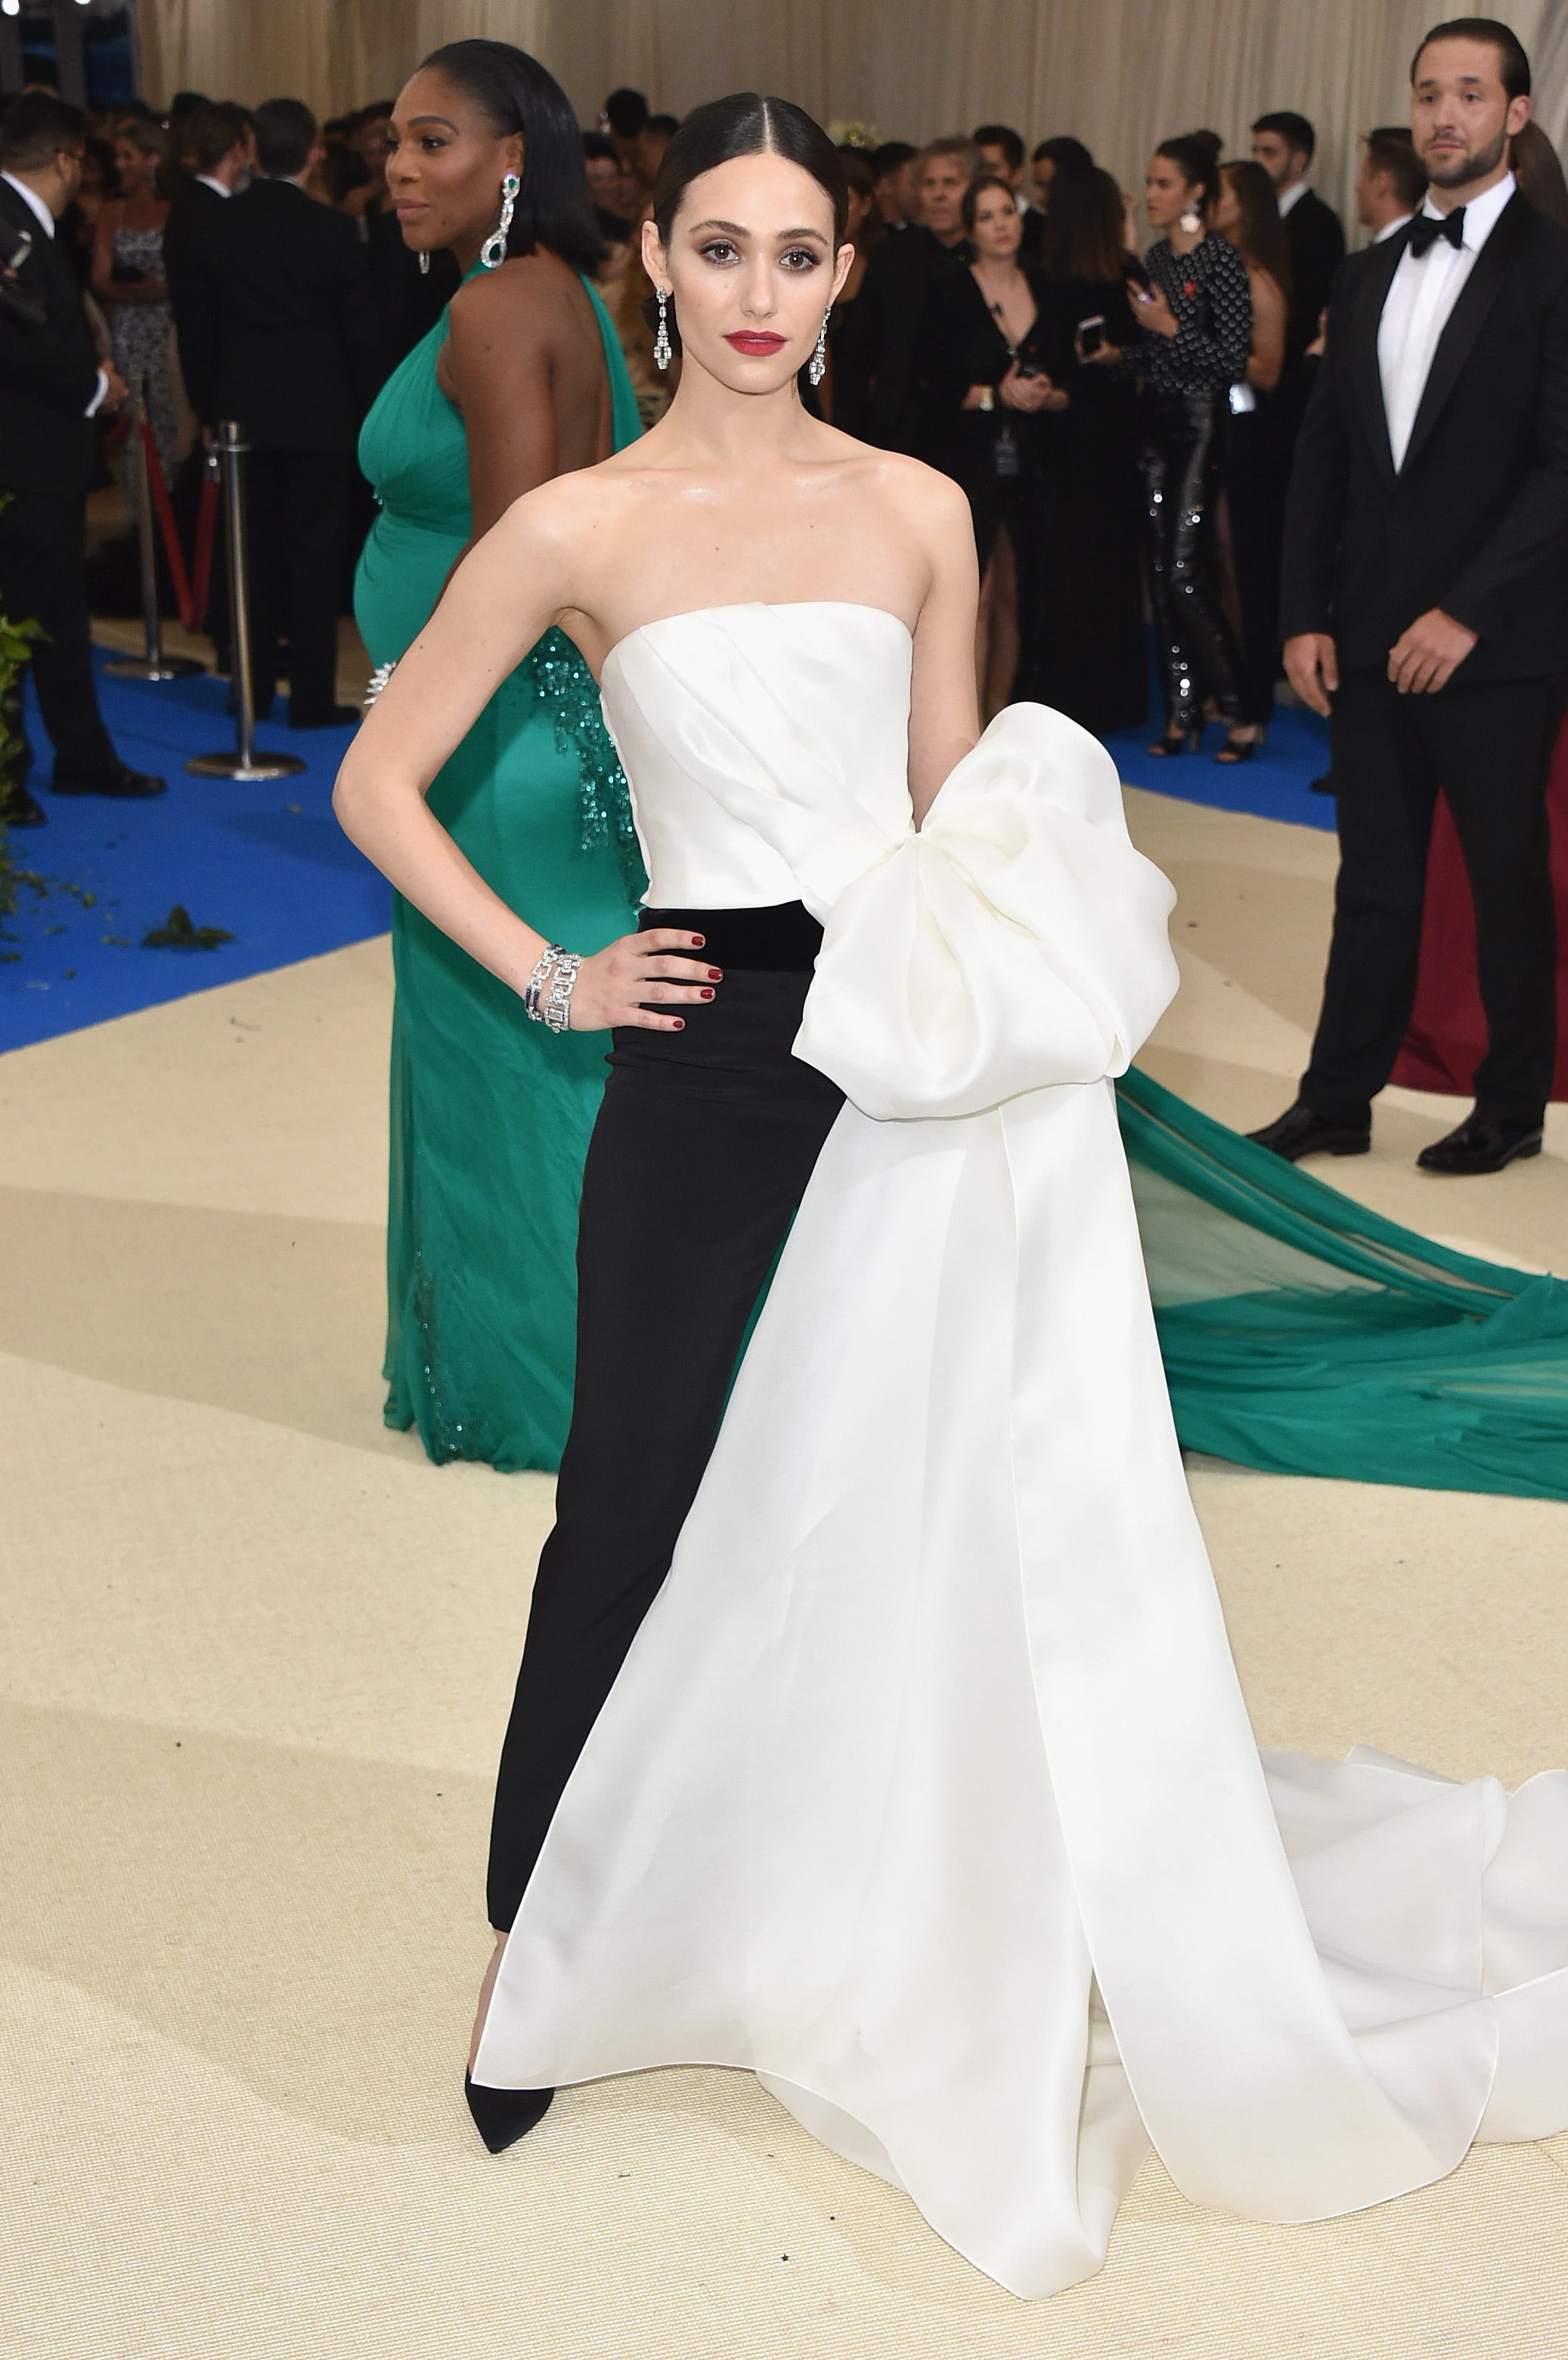 007e9aa80f63 Met Gala Best Dressed 2017 Red Carpet Outfit Photos